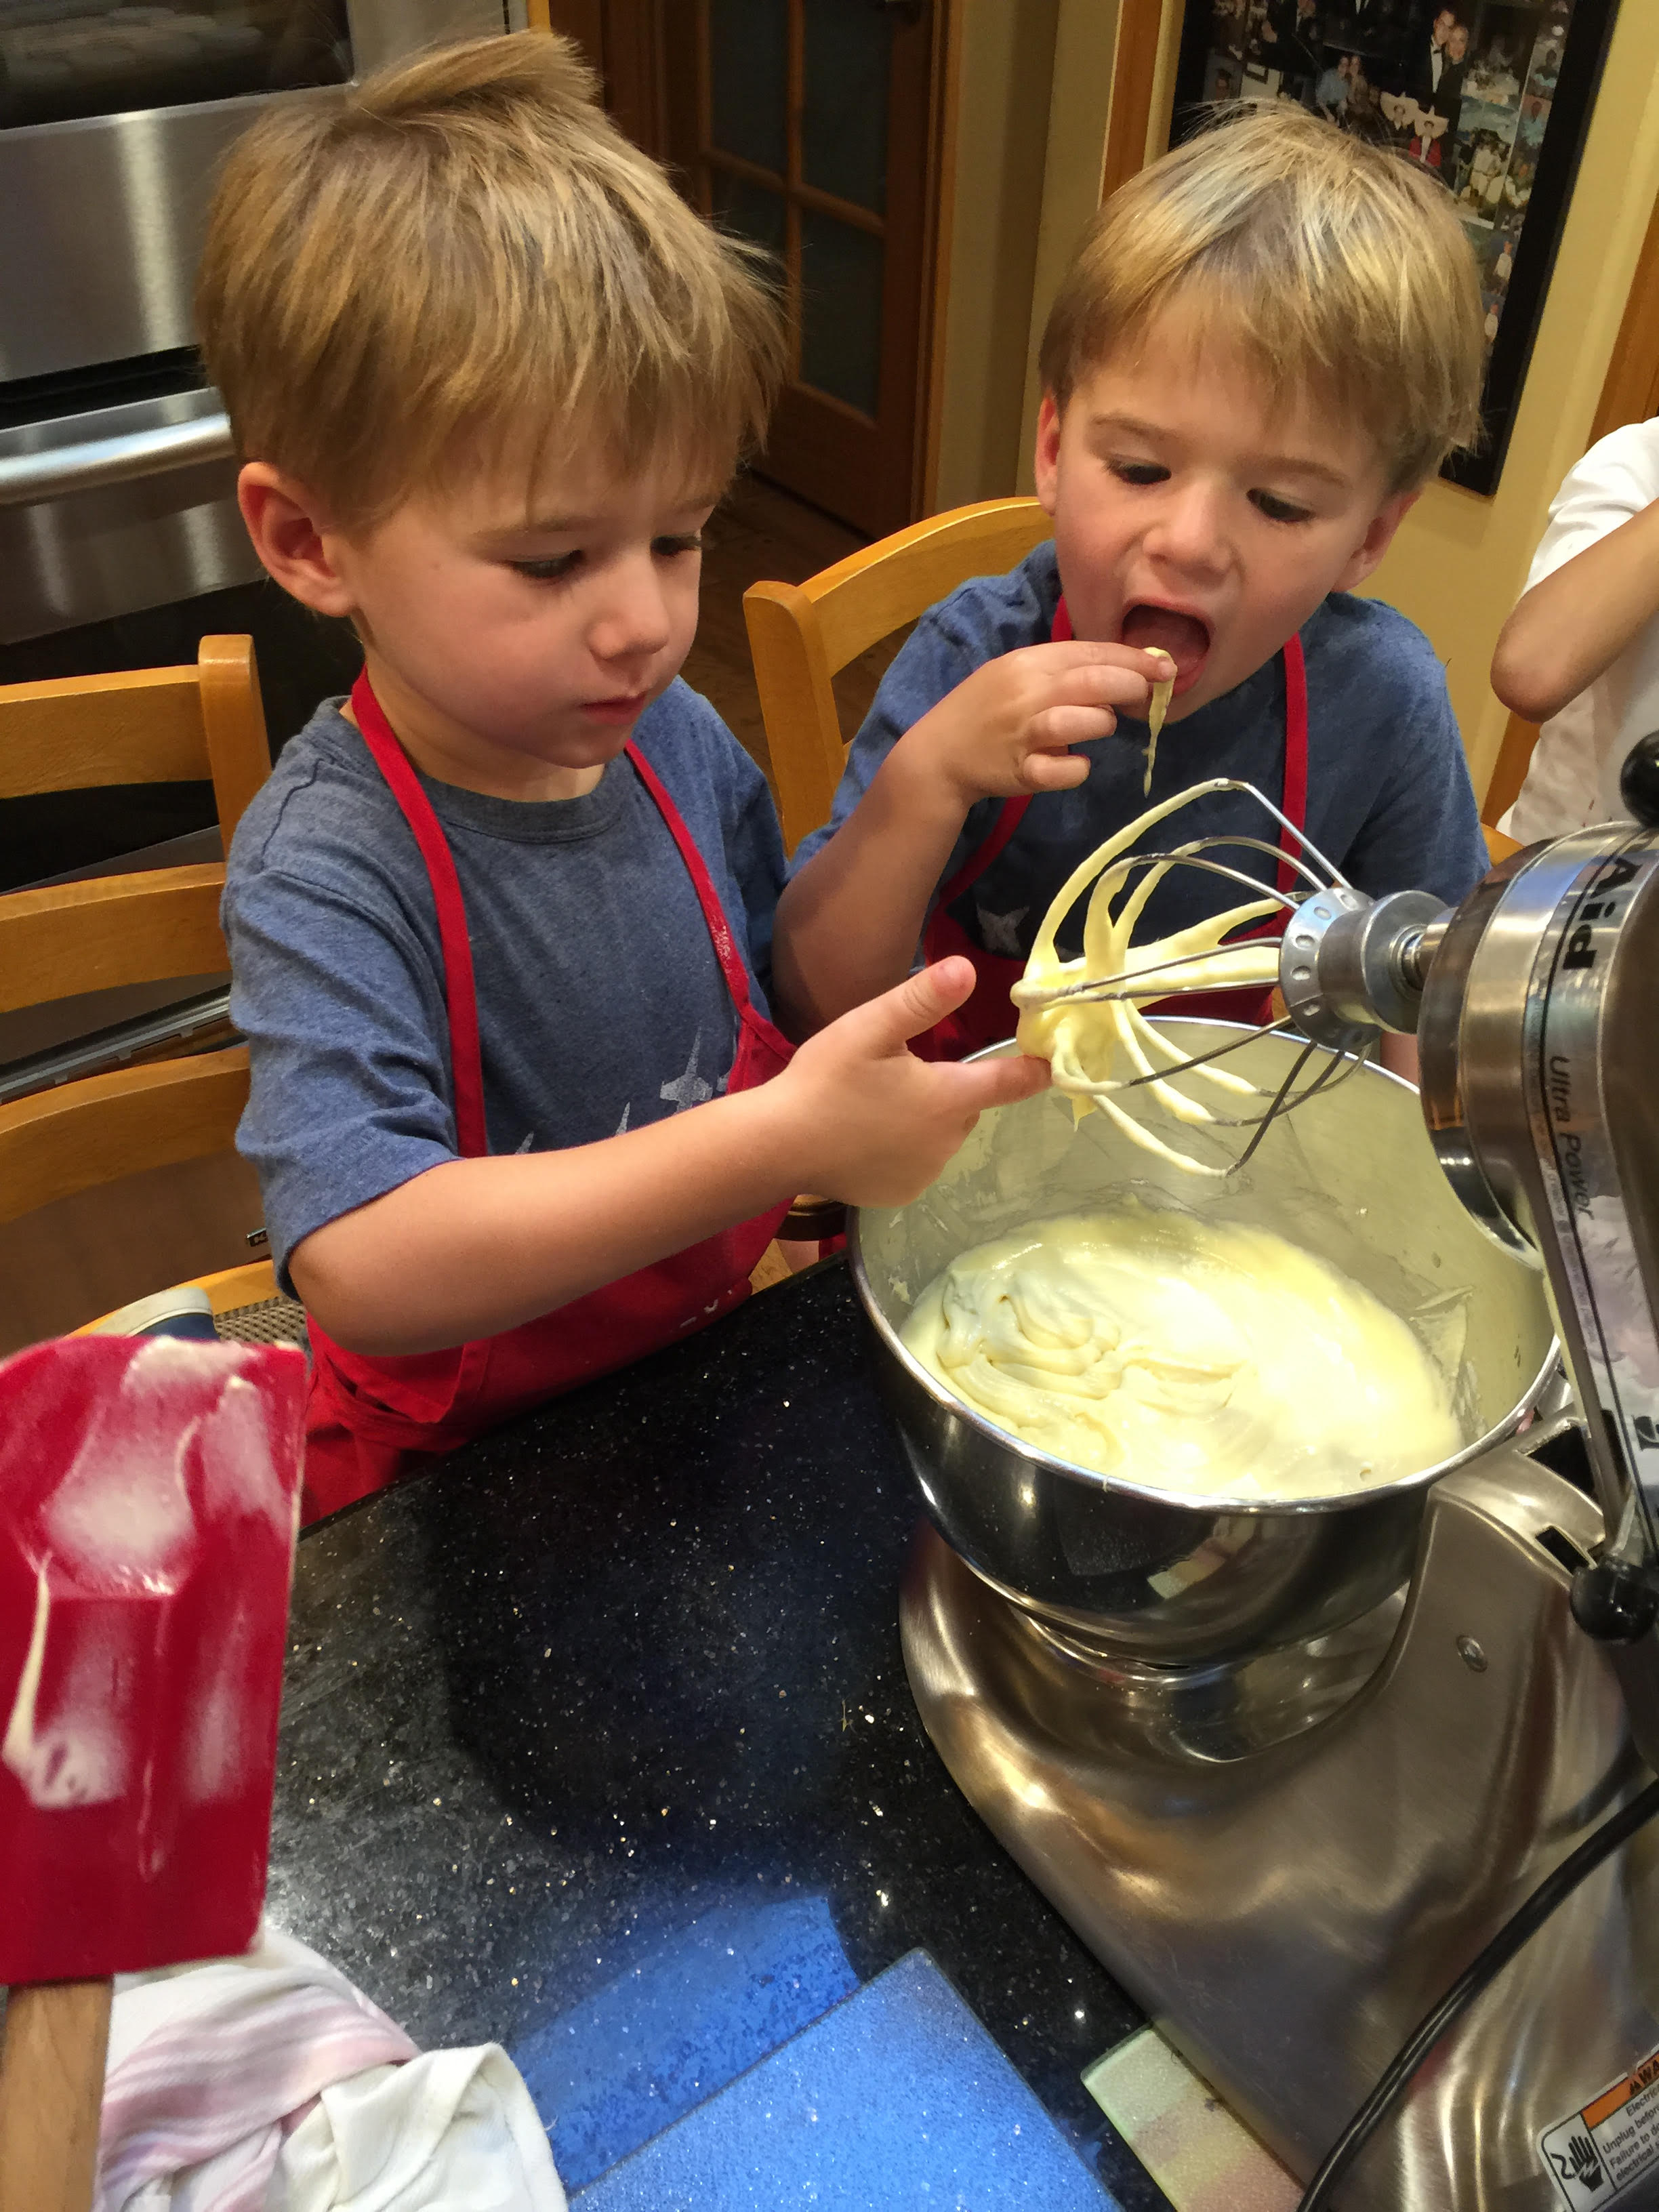 NOah and Gabe tasting cupcake mixture